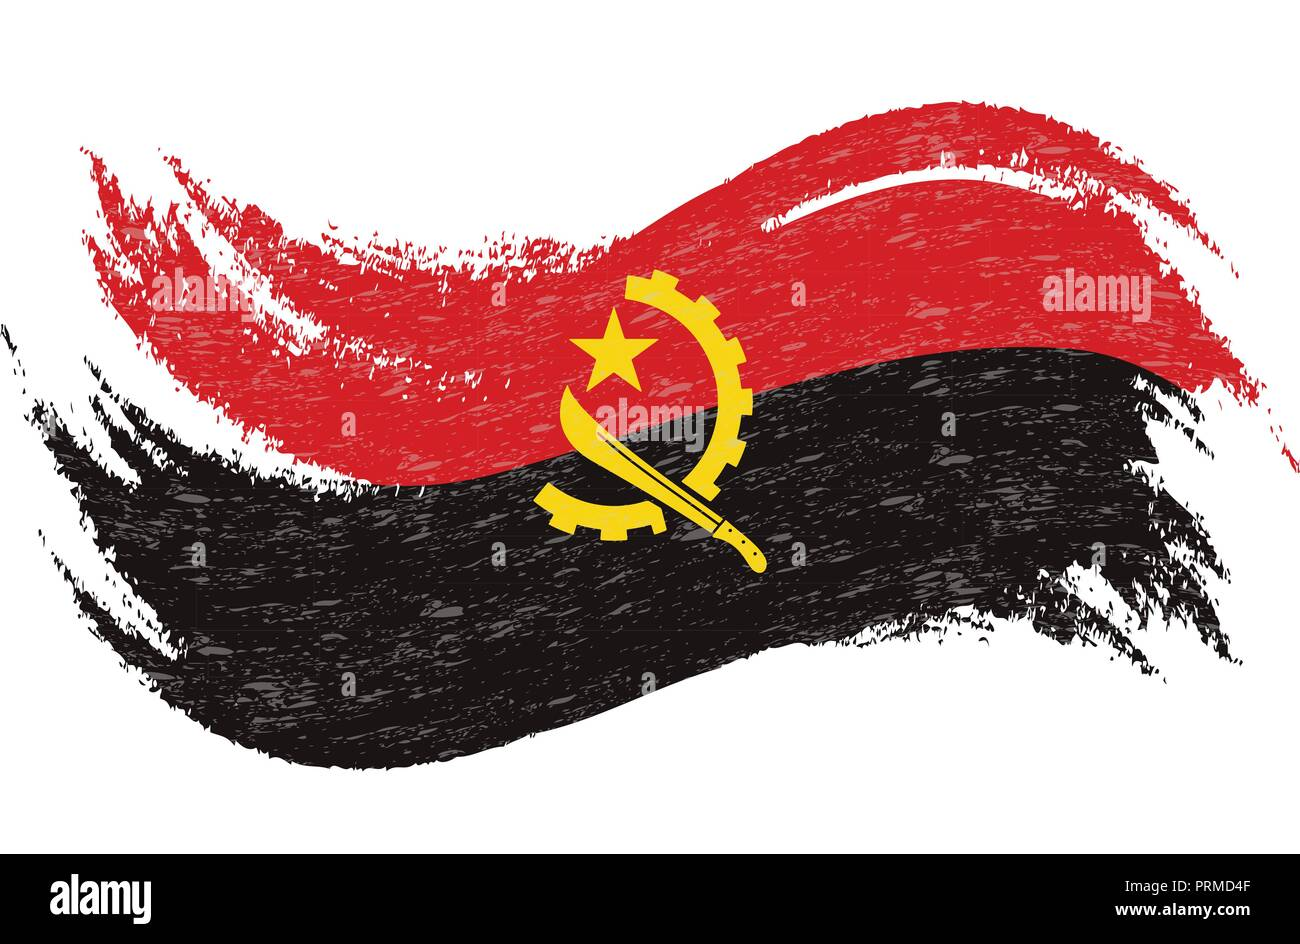 National Flag Of Angola, Designed Using Brush Strokes,Isolated On A White Background. Vector Illustration. - Stock Image